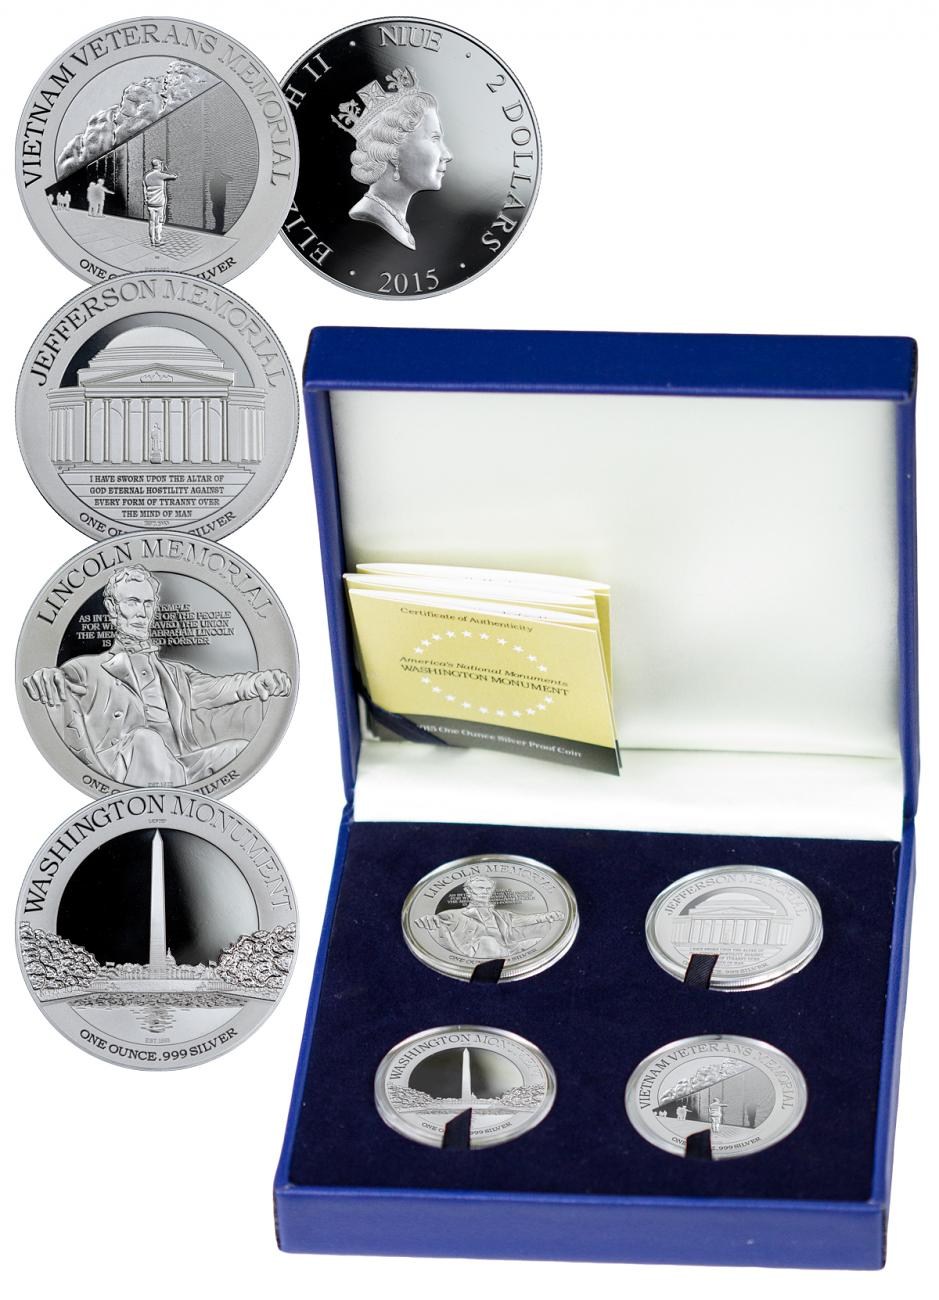 2015 Niue $2 1 oz. Proof Silver America's National Monuments Series - Set of 4 Coins - GEM Proof (Original Mint Packaging)